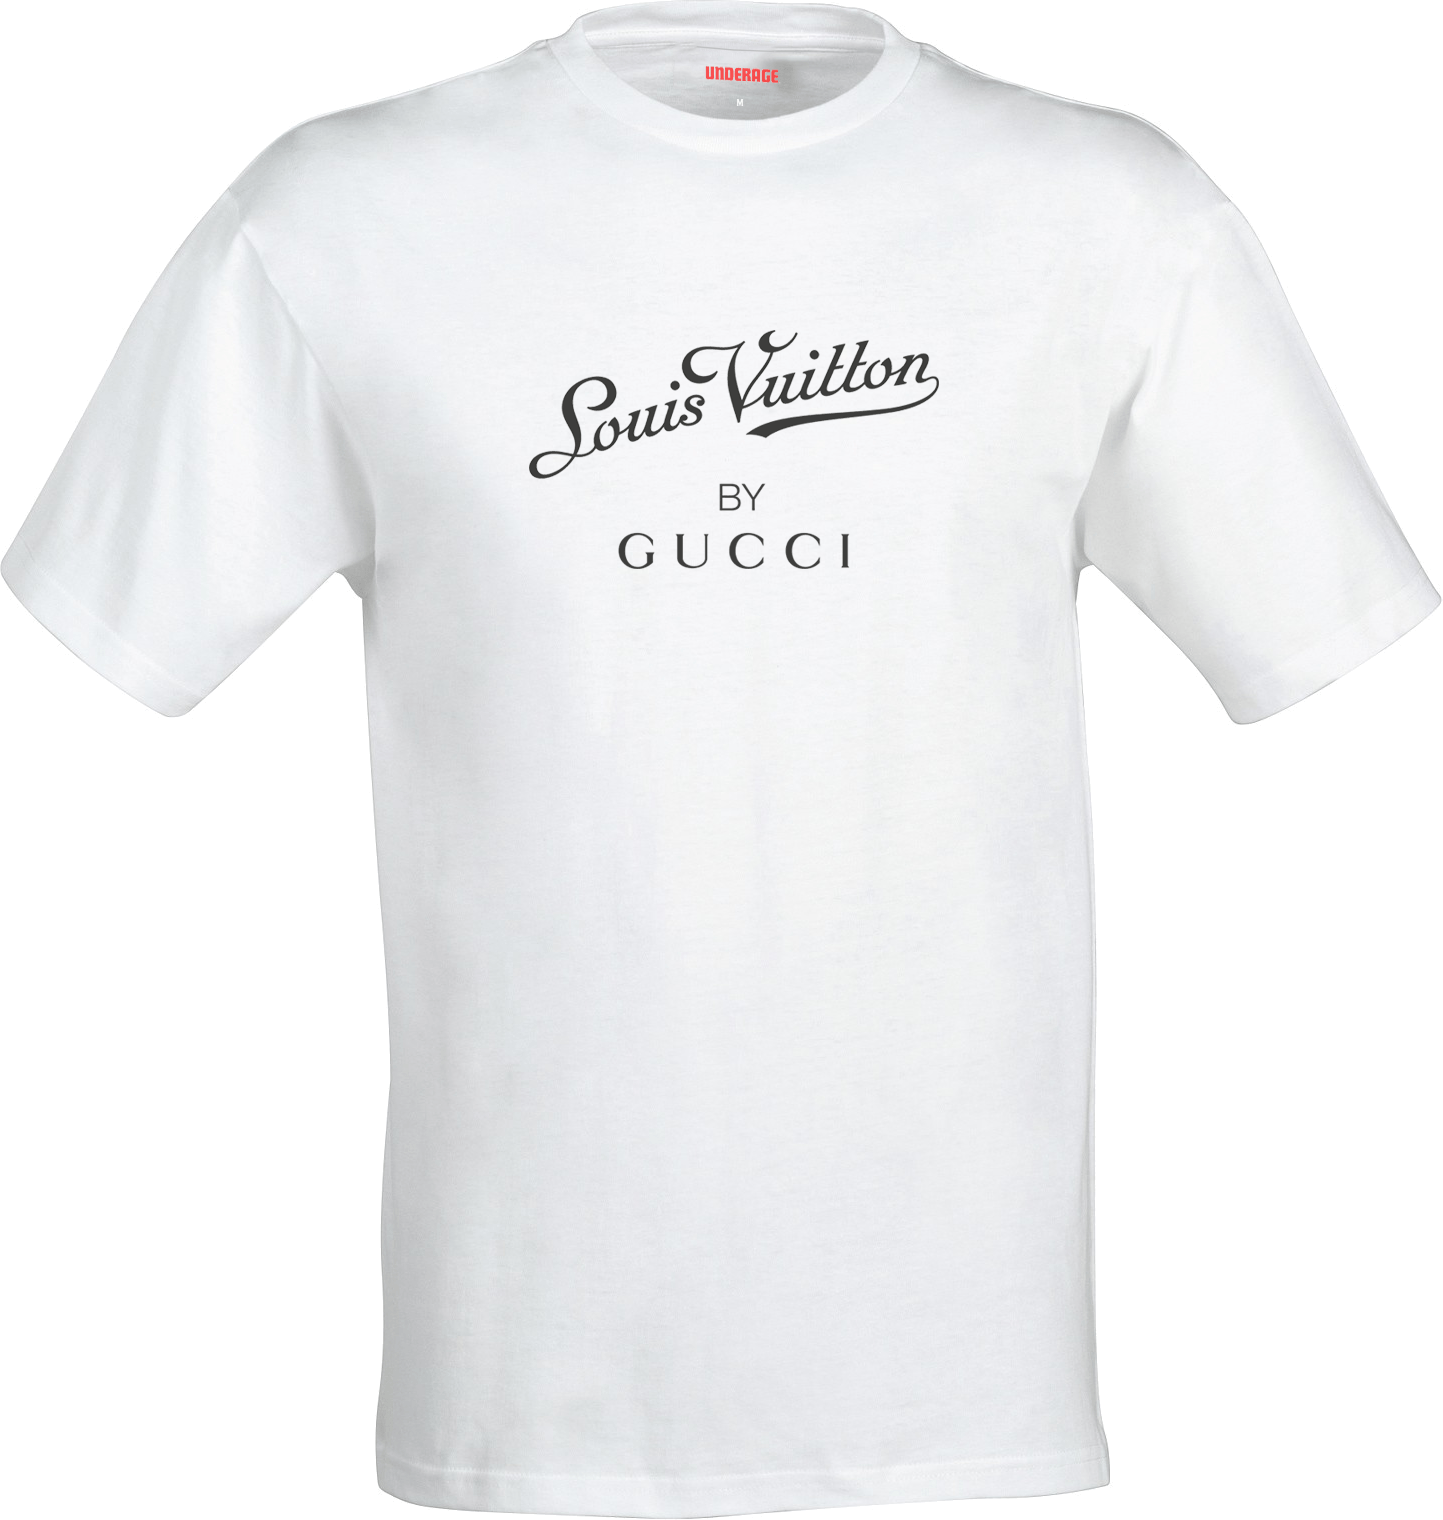 louis by gucci t shirt white underage. Black Bedroom Furniture Sets. Home Design Ideas